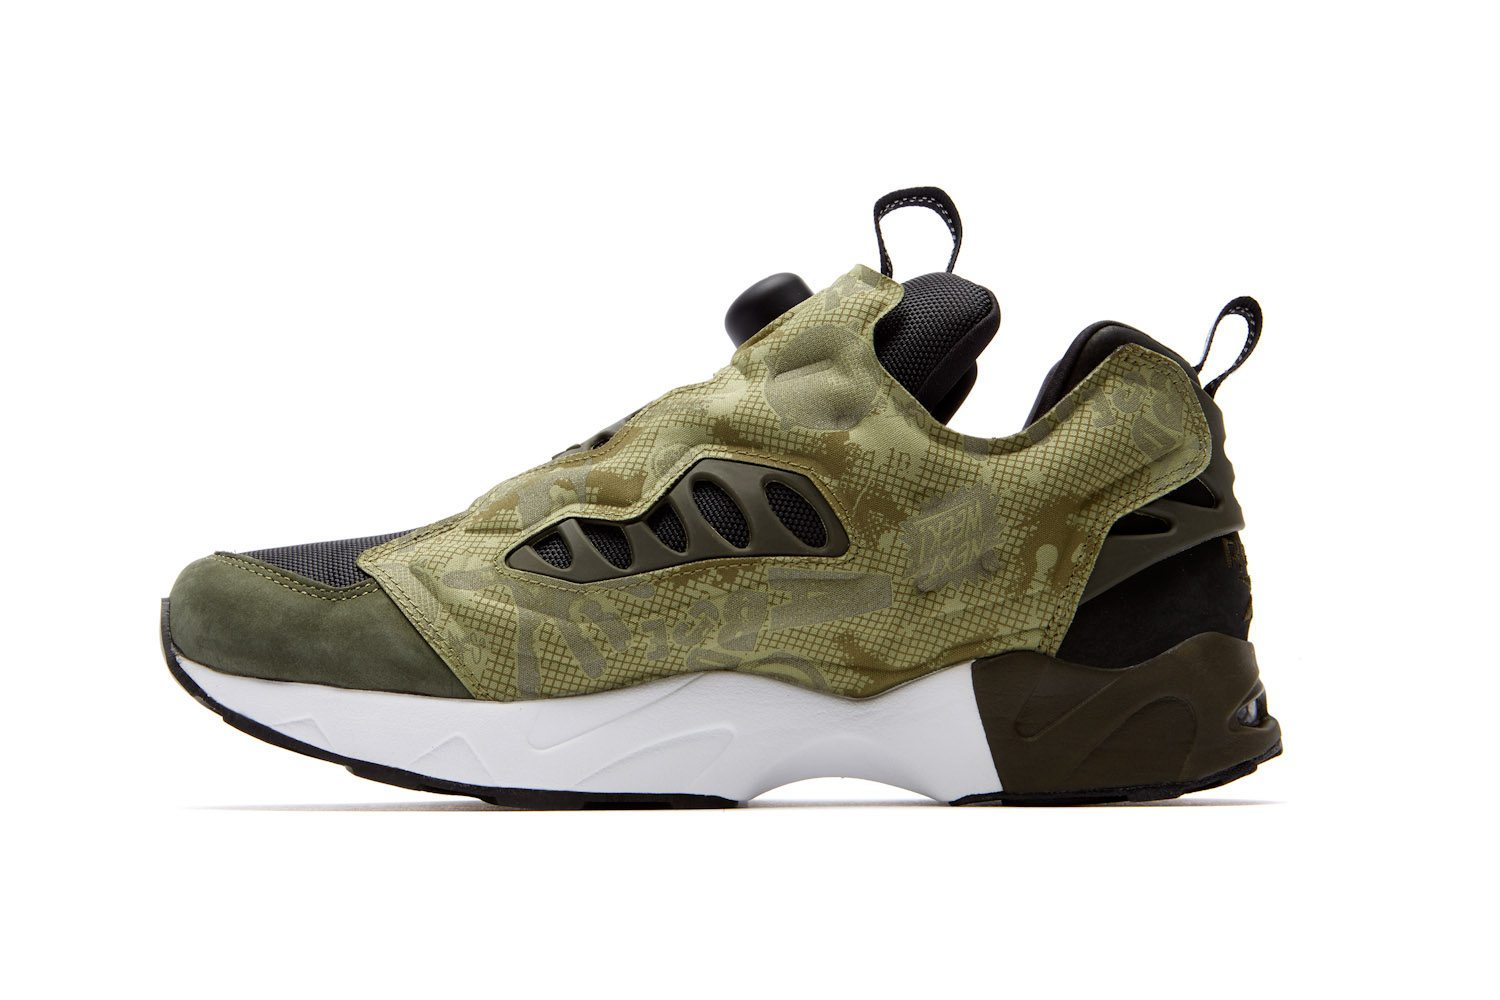 Swifty x Reebok Classic Instapump Fury Road Night Camo 2